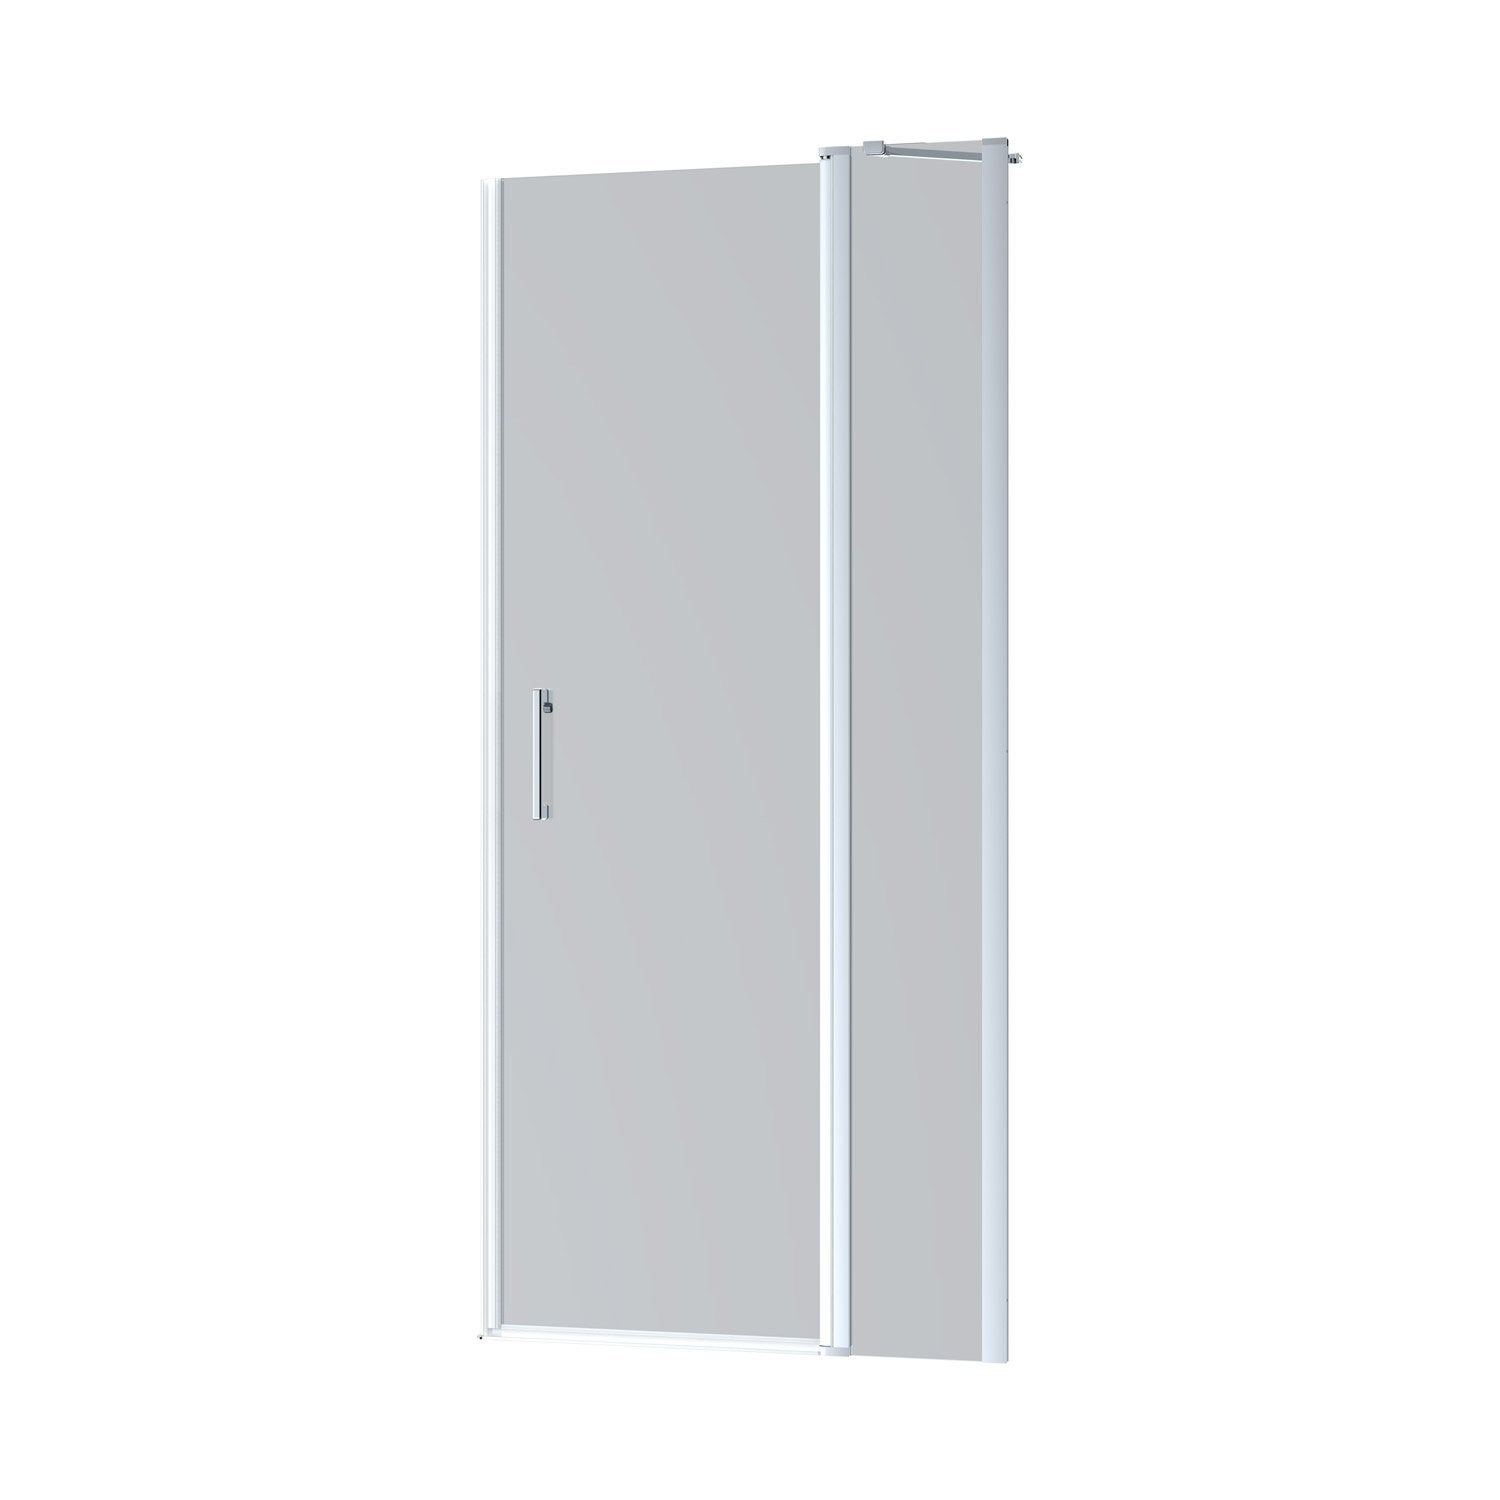 Porte douche leroy merlin porte de douche pivotante 68 for Porte 3 points leroy merlin